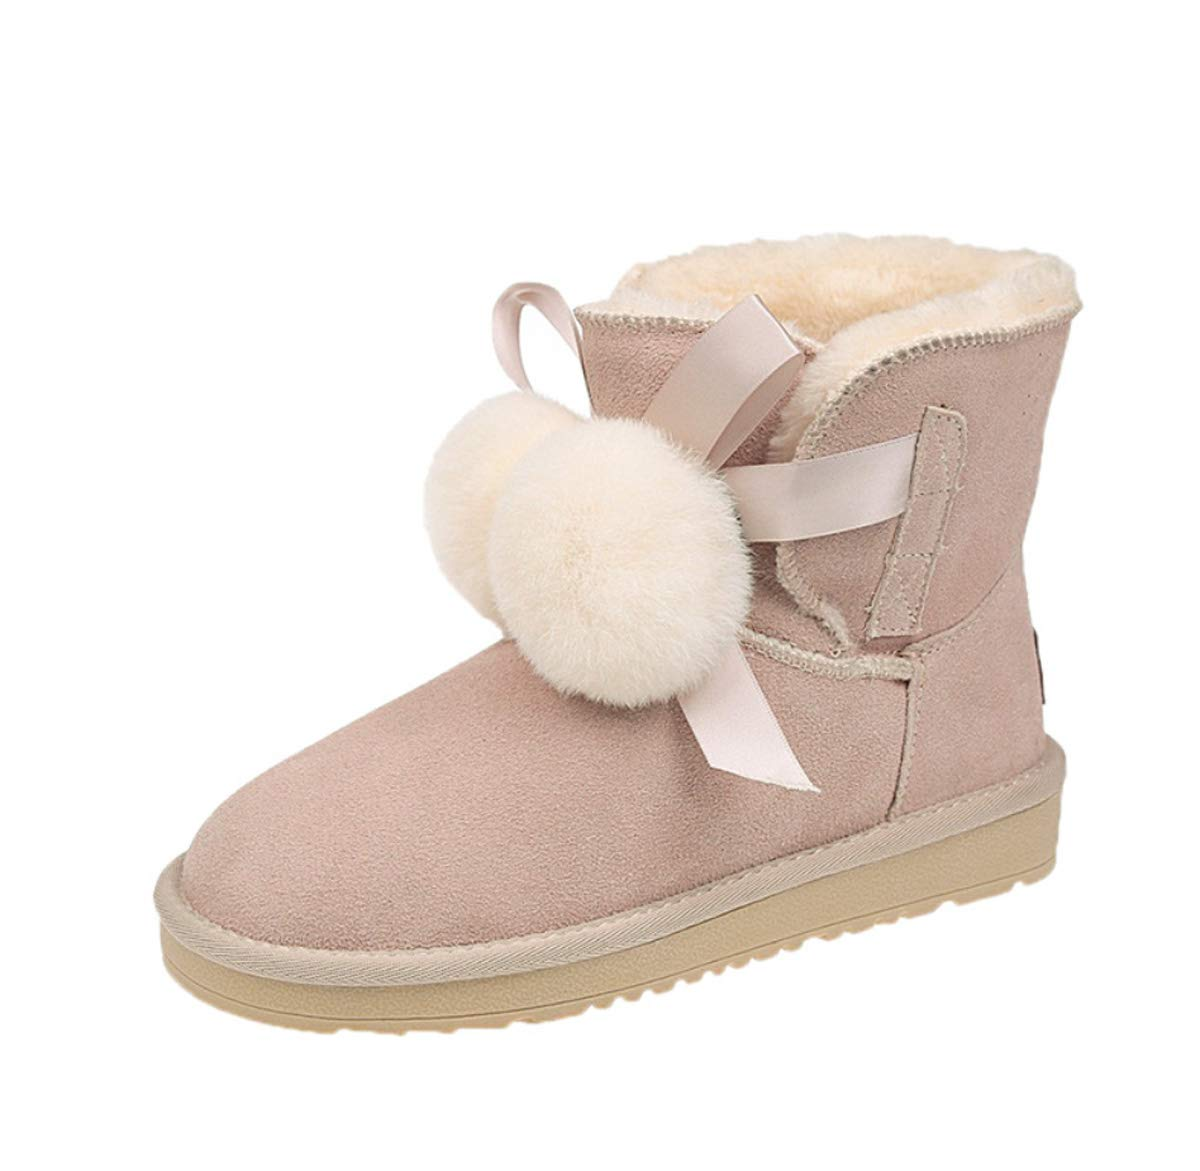 C Boots for Women Winter Warm Pompom Snow Boots with Flat Heel Non-Slip Ankle Boots shoes for Girls Ladies